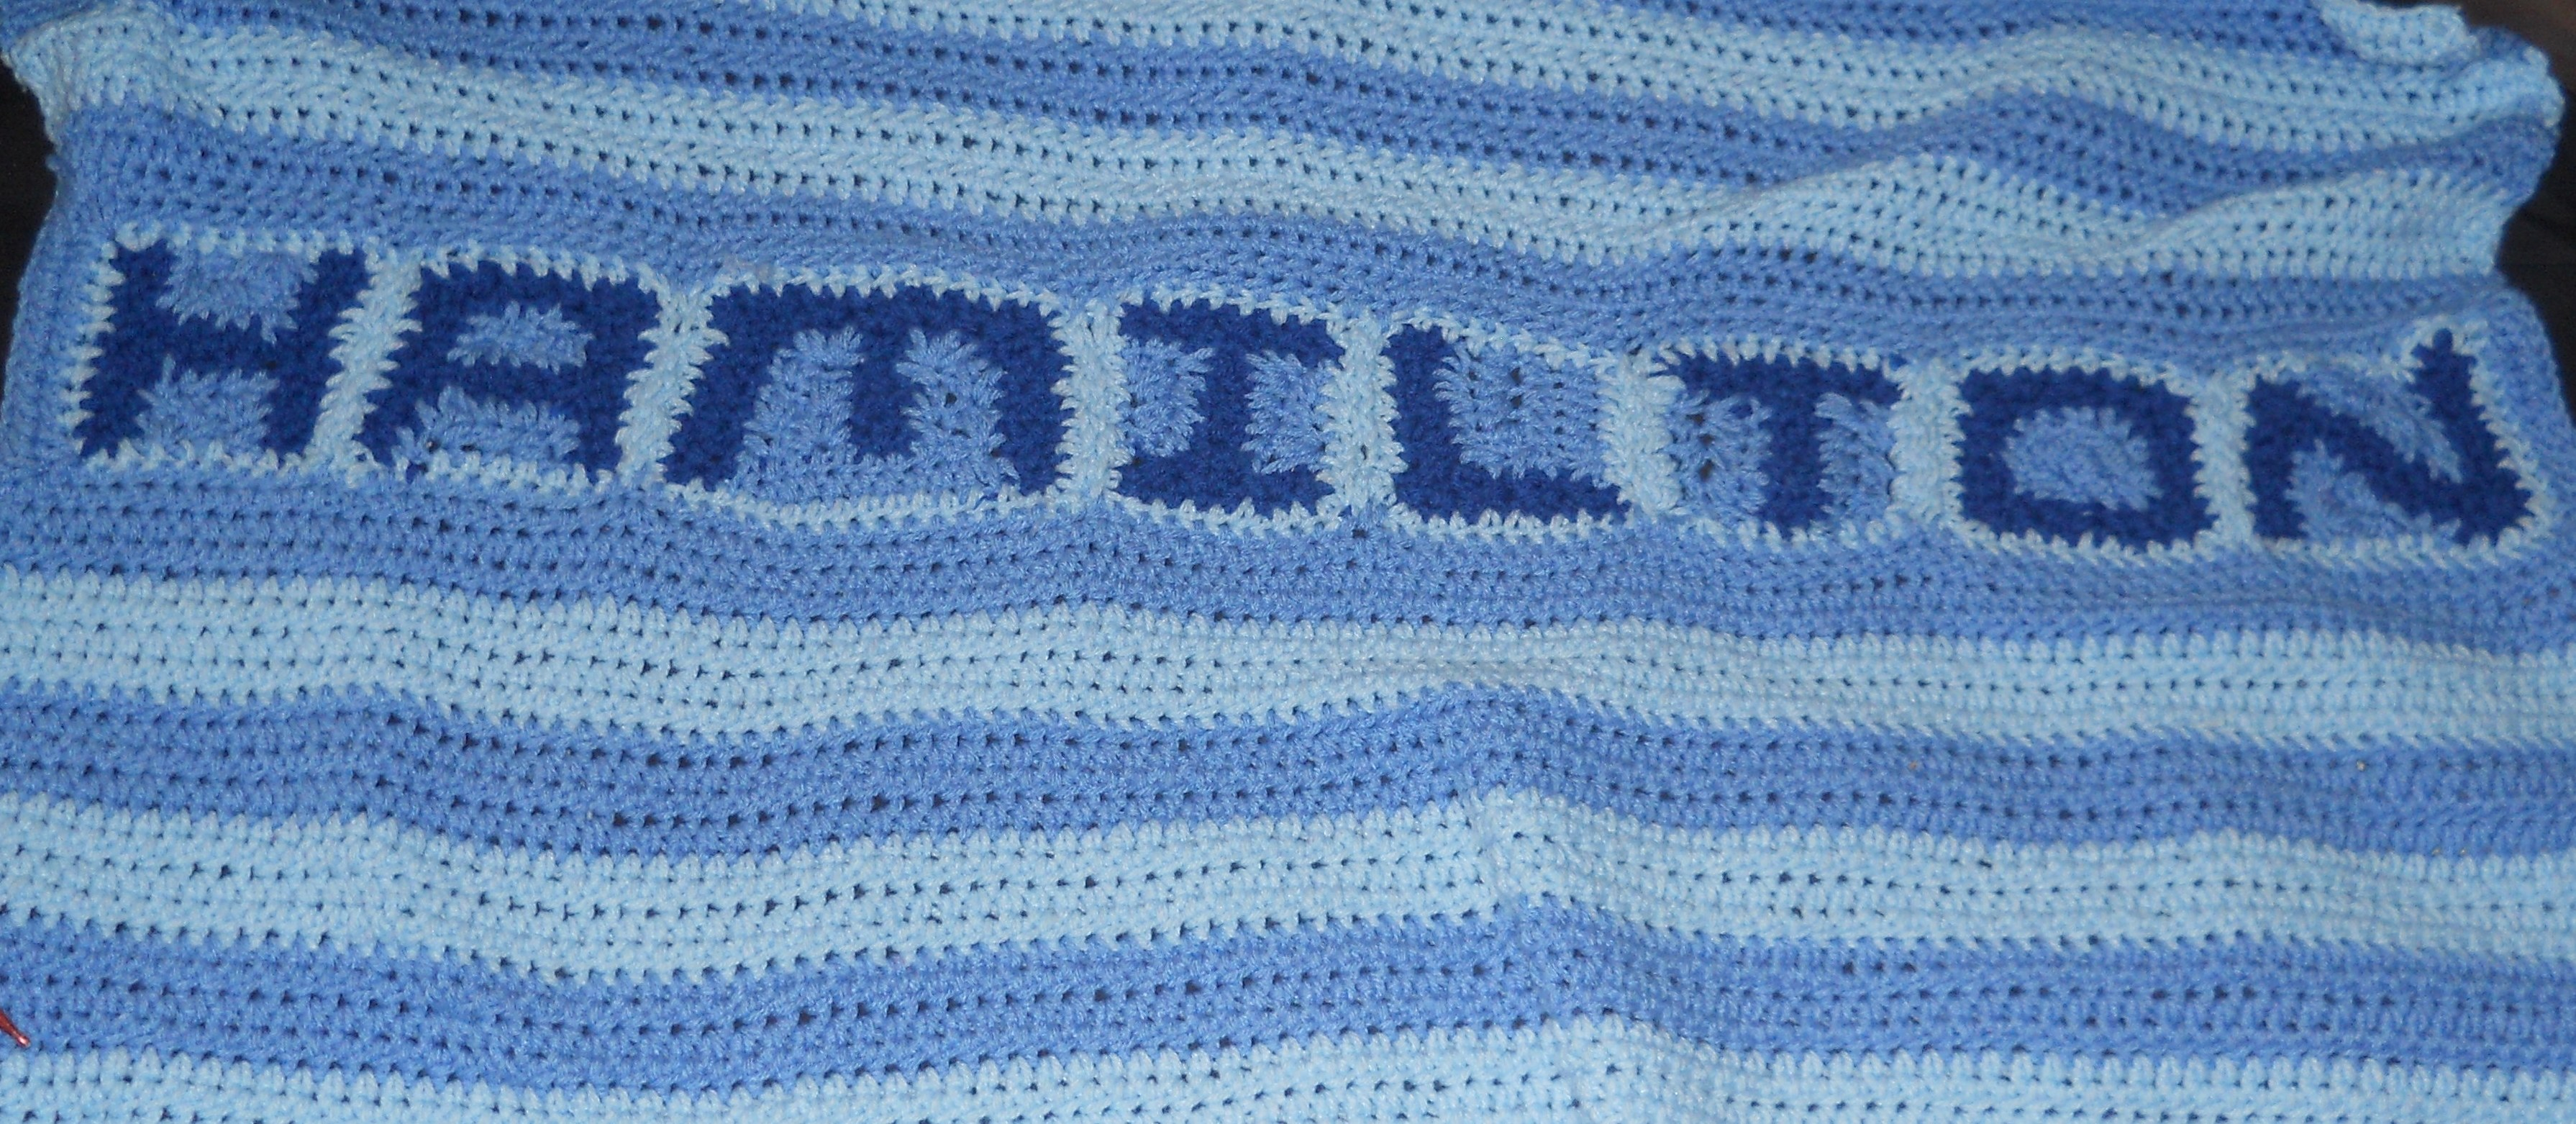 Crochet Personalized Baby Blanket 3 Colors Style 1 Crystals